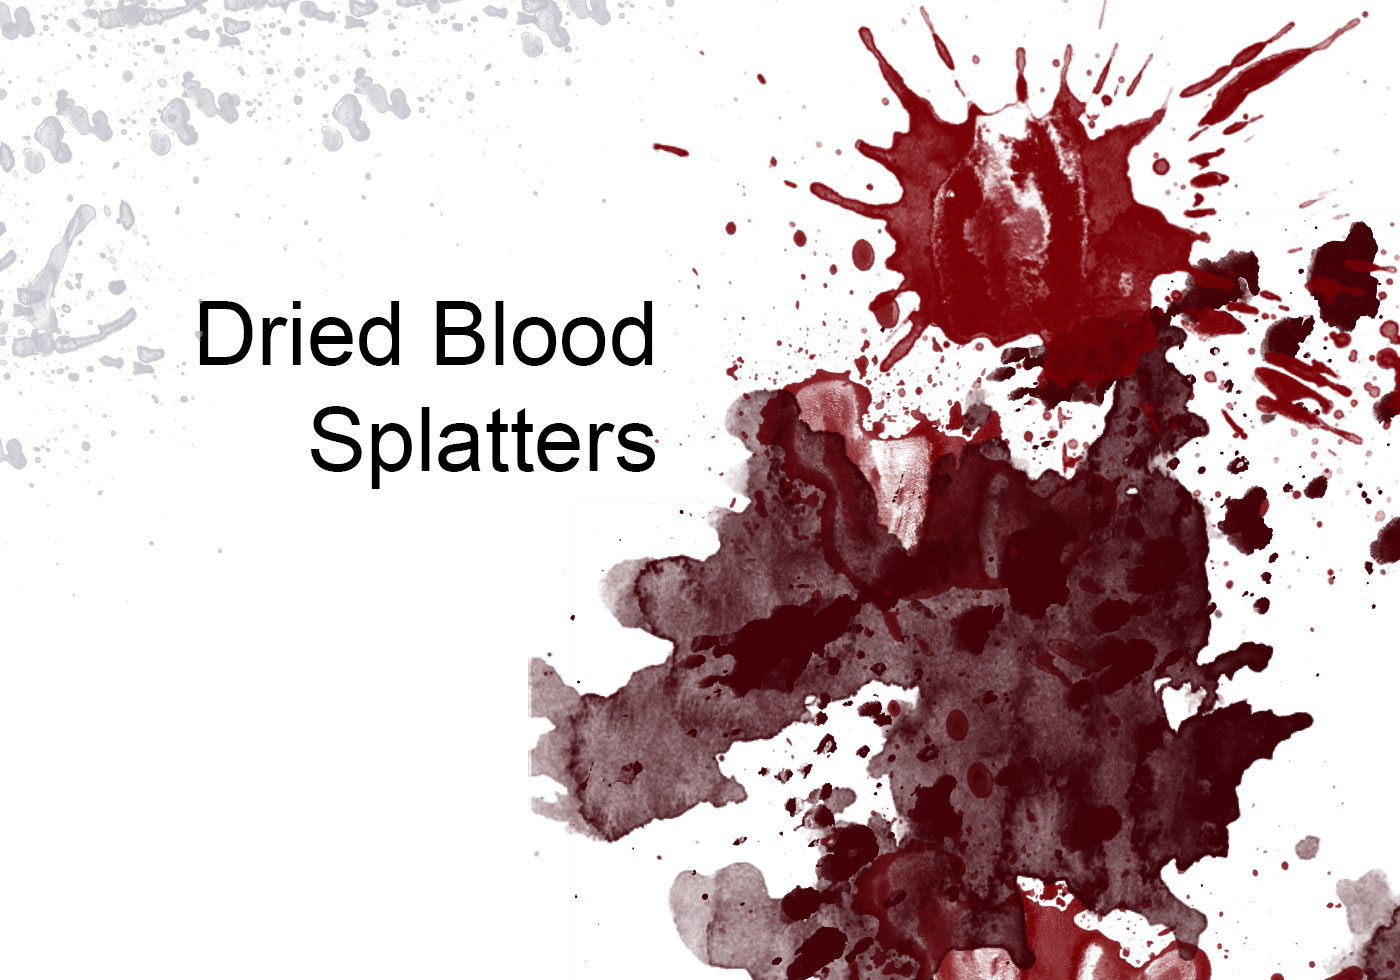 Dried Blood Splatters - Free Photoshop Brushes at Brusheezy!